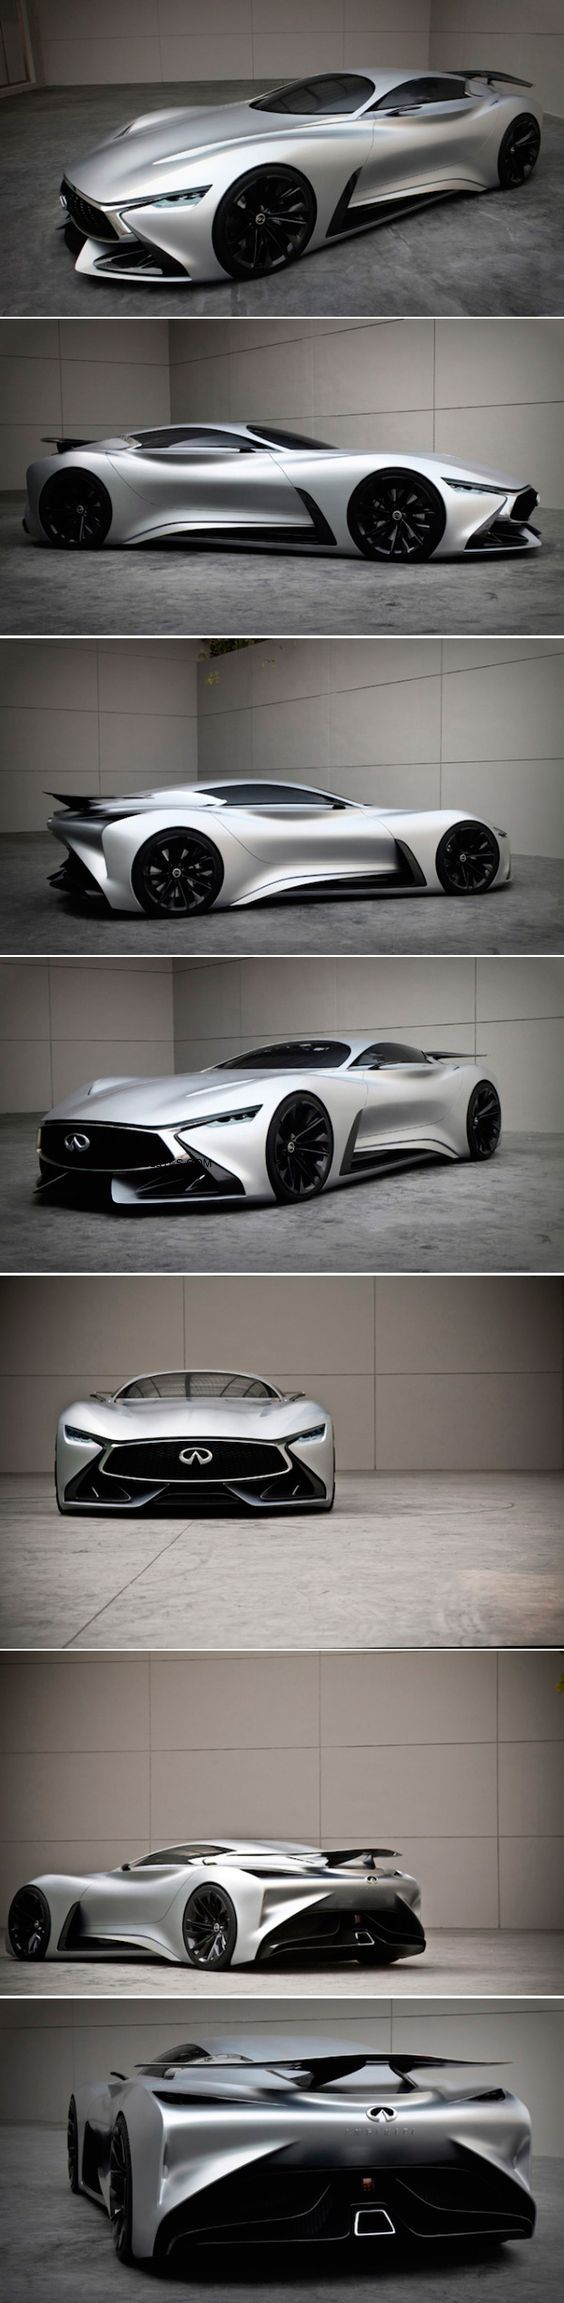 "MUST SEE ""2018 Infiniti Concept Vision GT "" Concept Release Date, Price, News, Reviews"